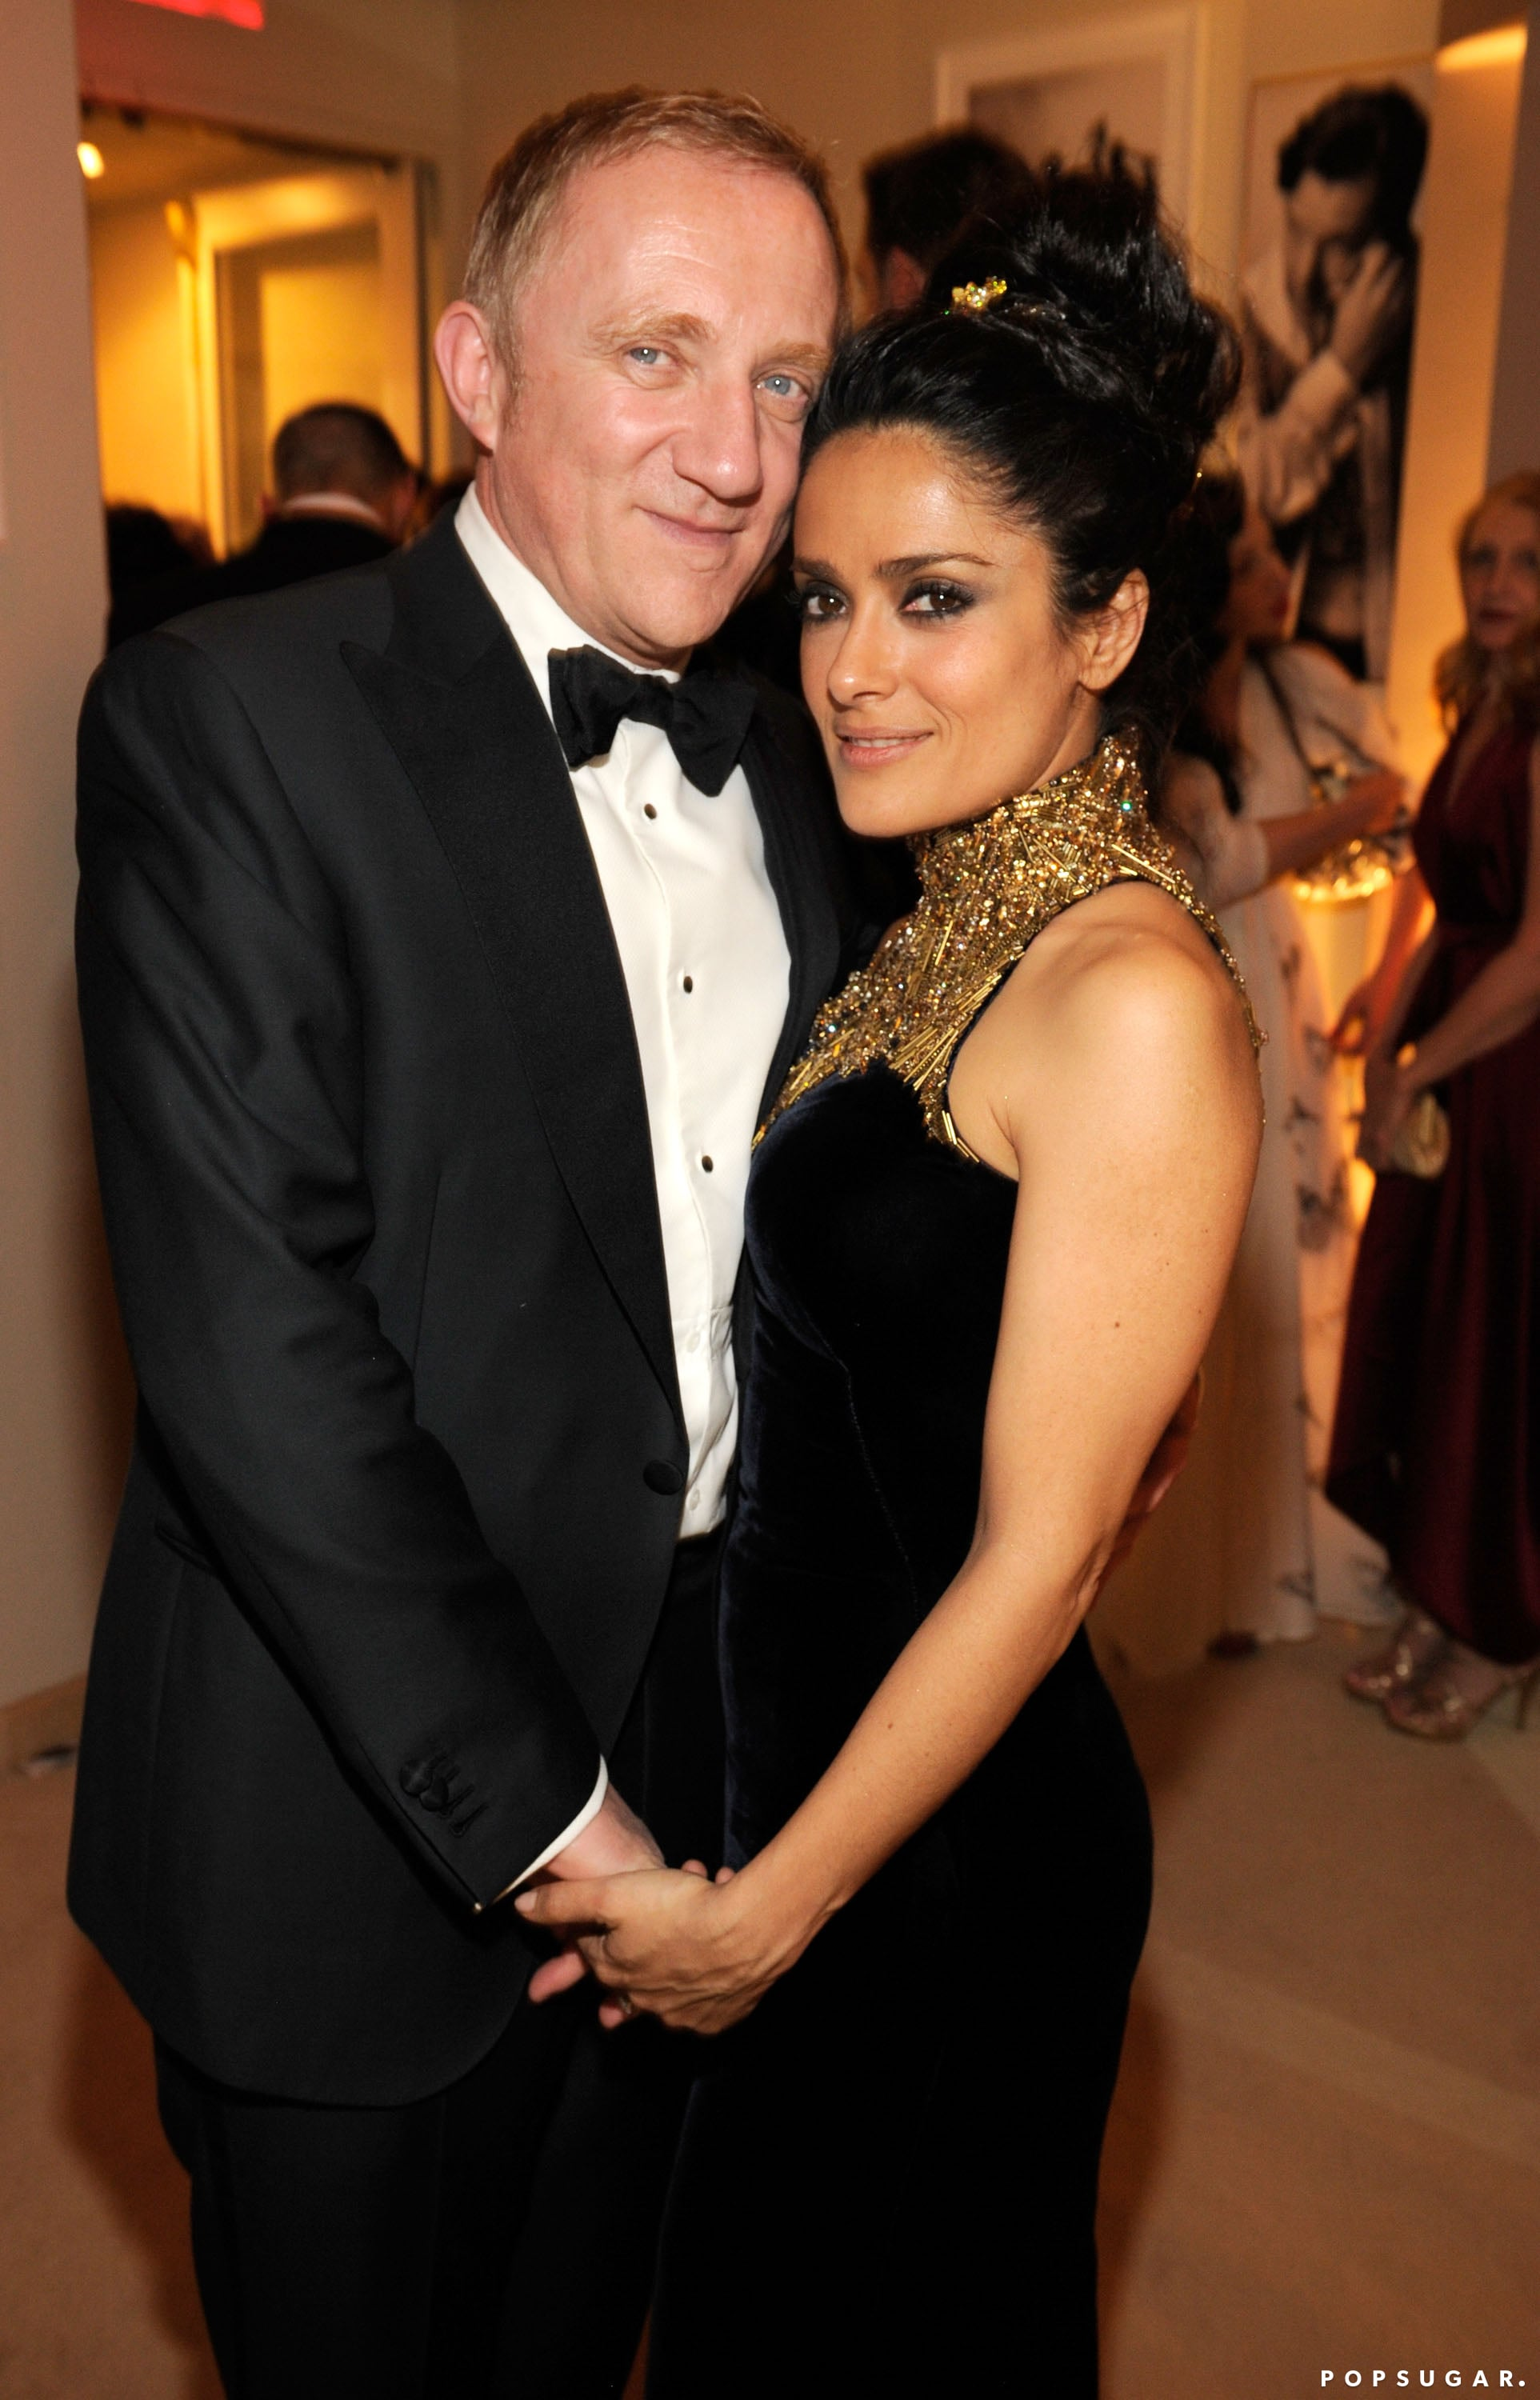 Fracois-Henri Pinault and Salma Hayek cozied up to one another at Vanity Fair's Oscar after-party.